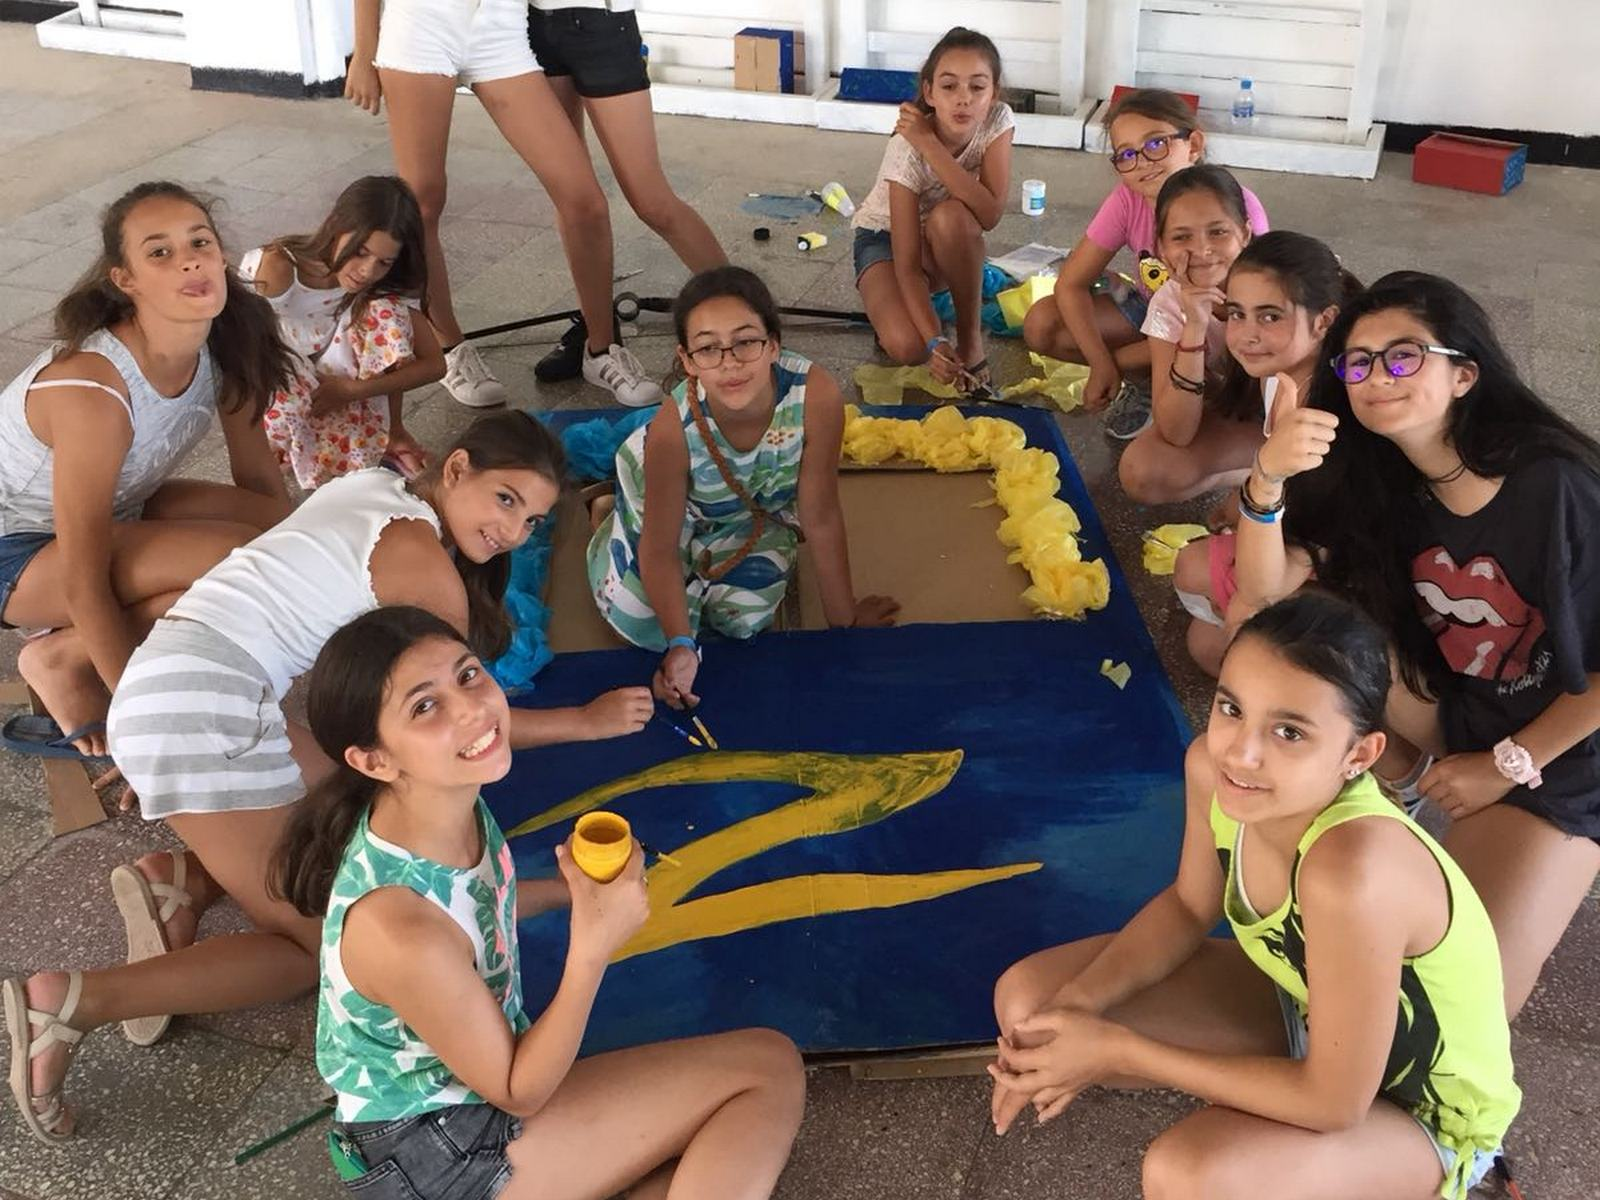 Z camp, Day 20 - Arts and crafts - many girls are photographed with the painted logo of Z news